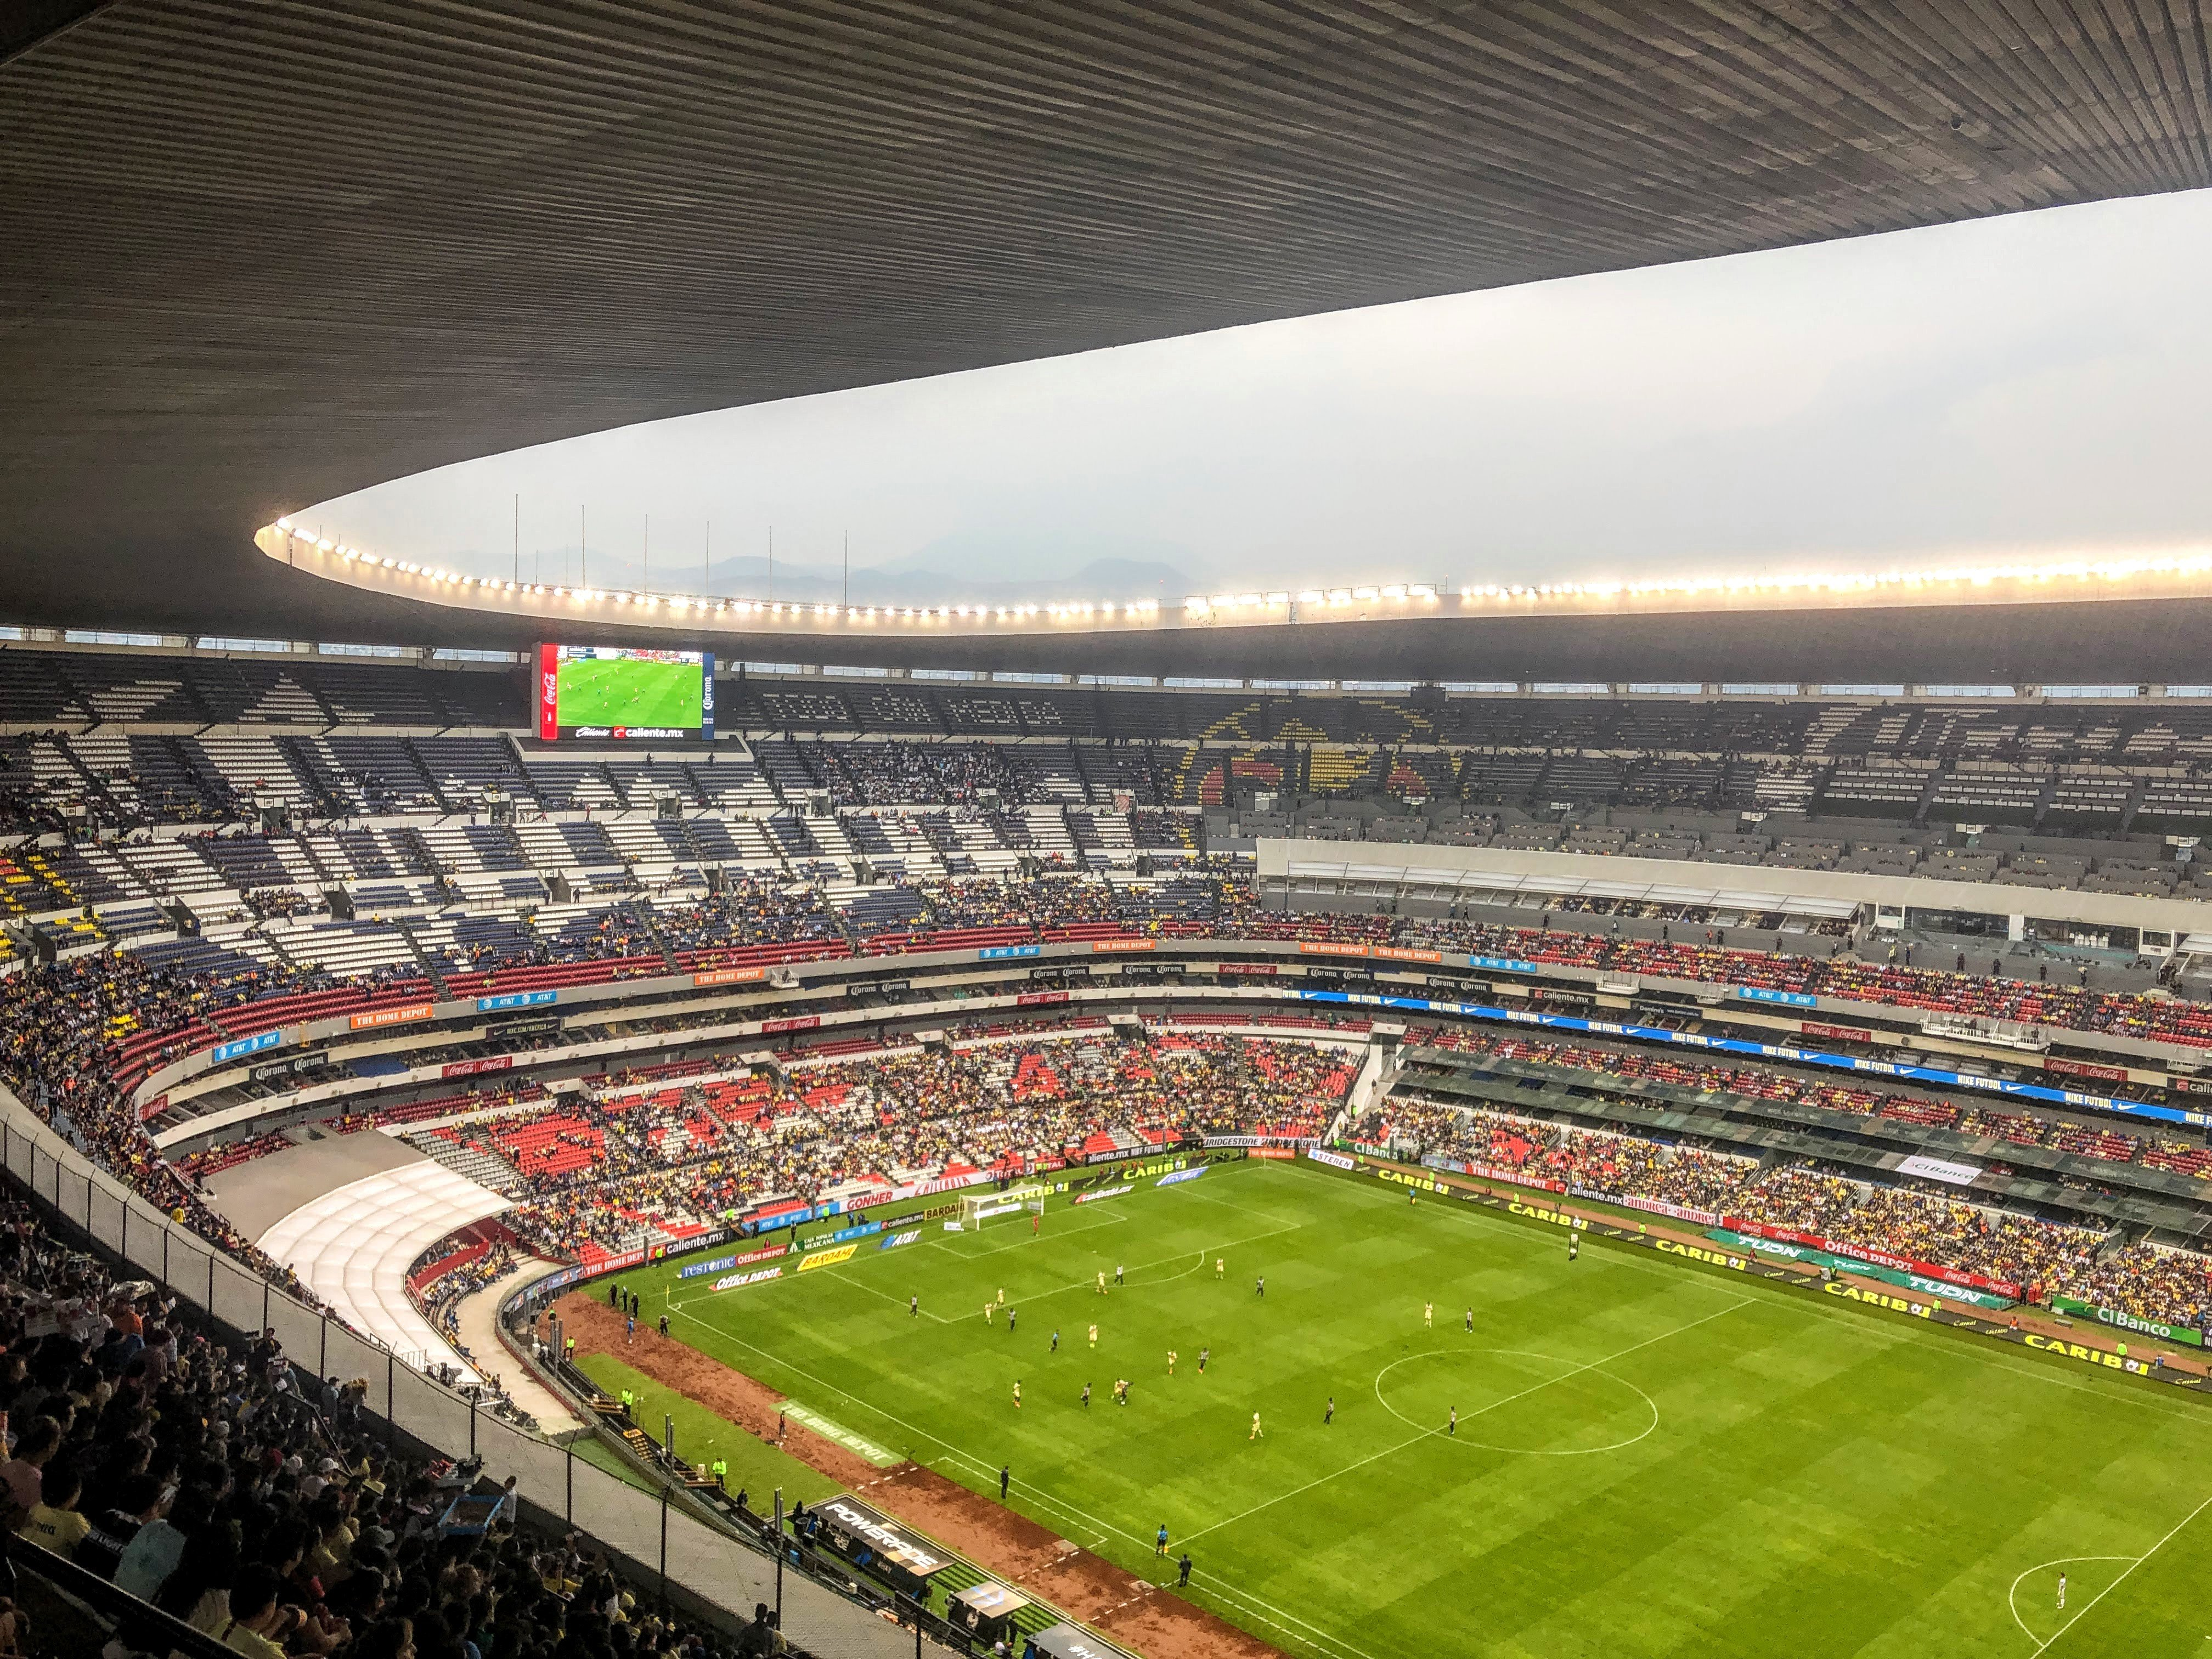 Estadio Azteca in Mexico City